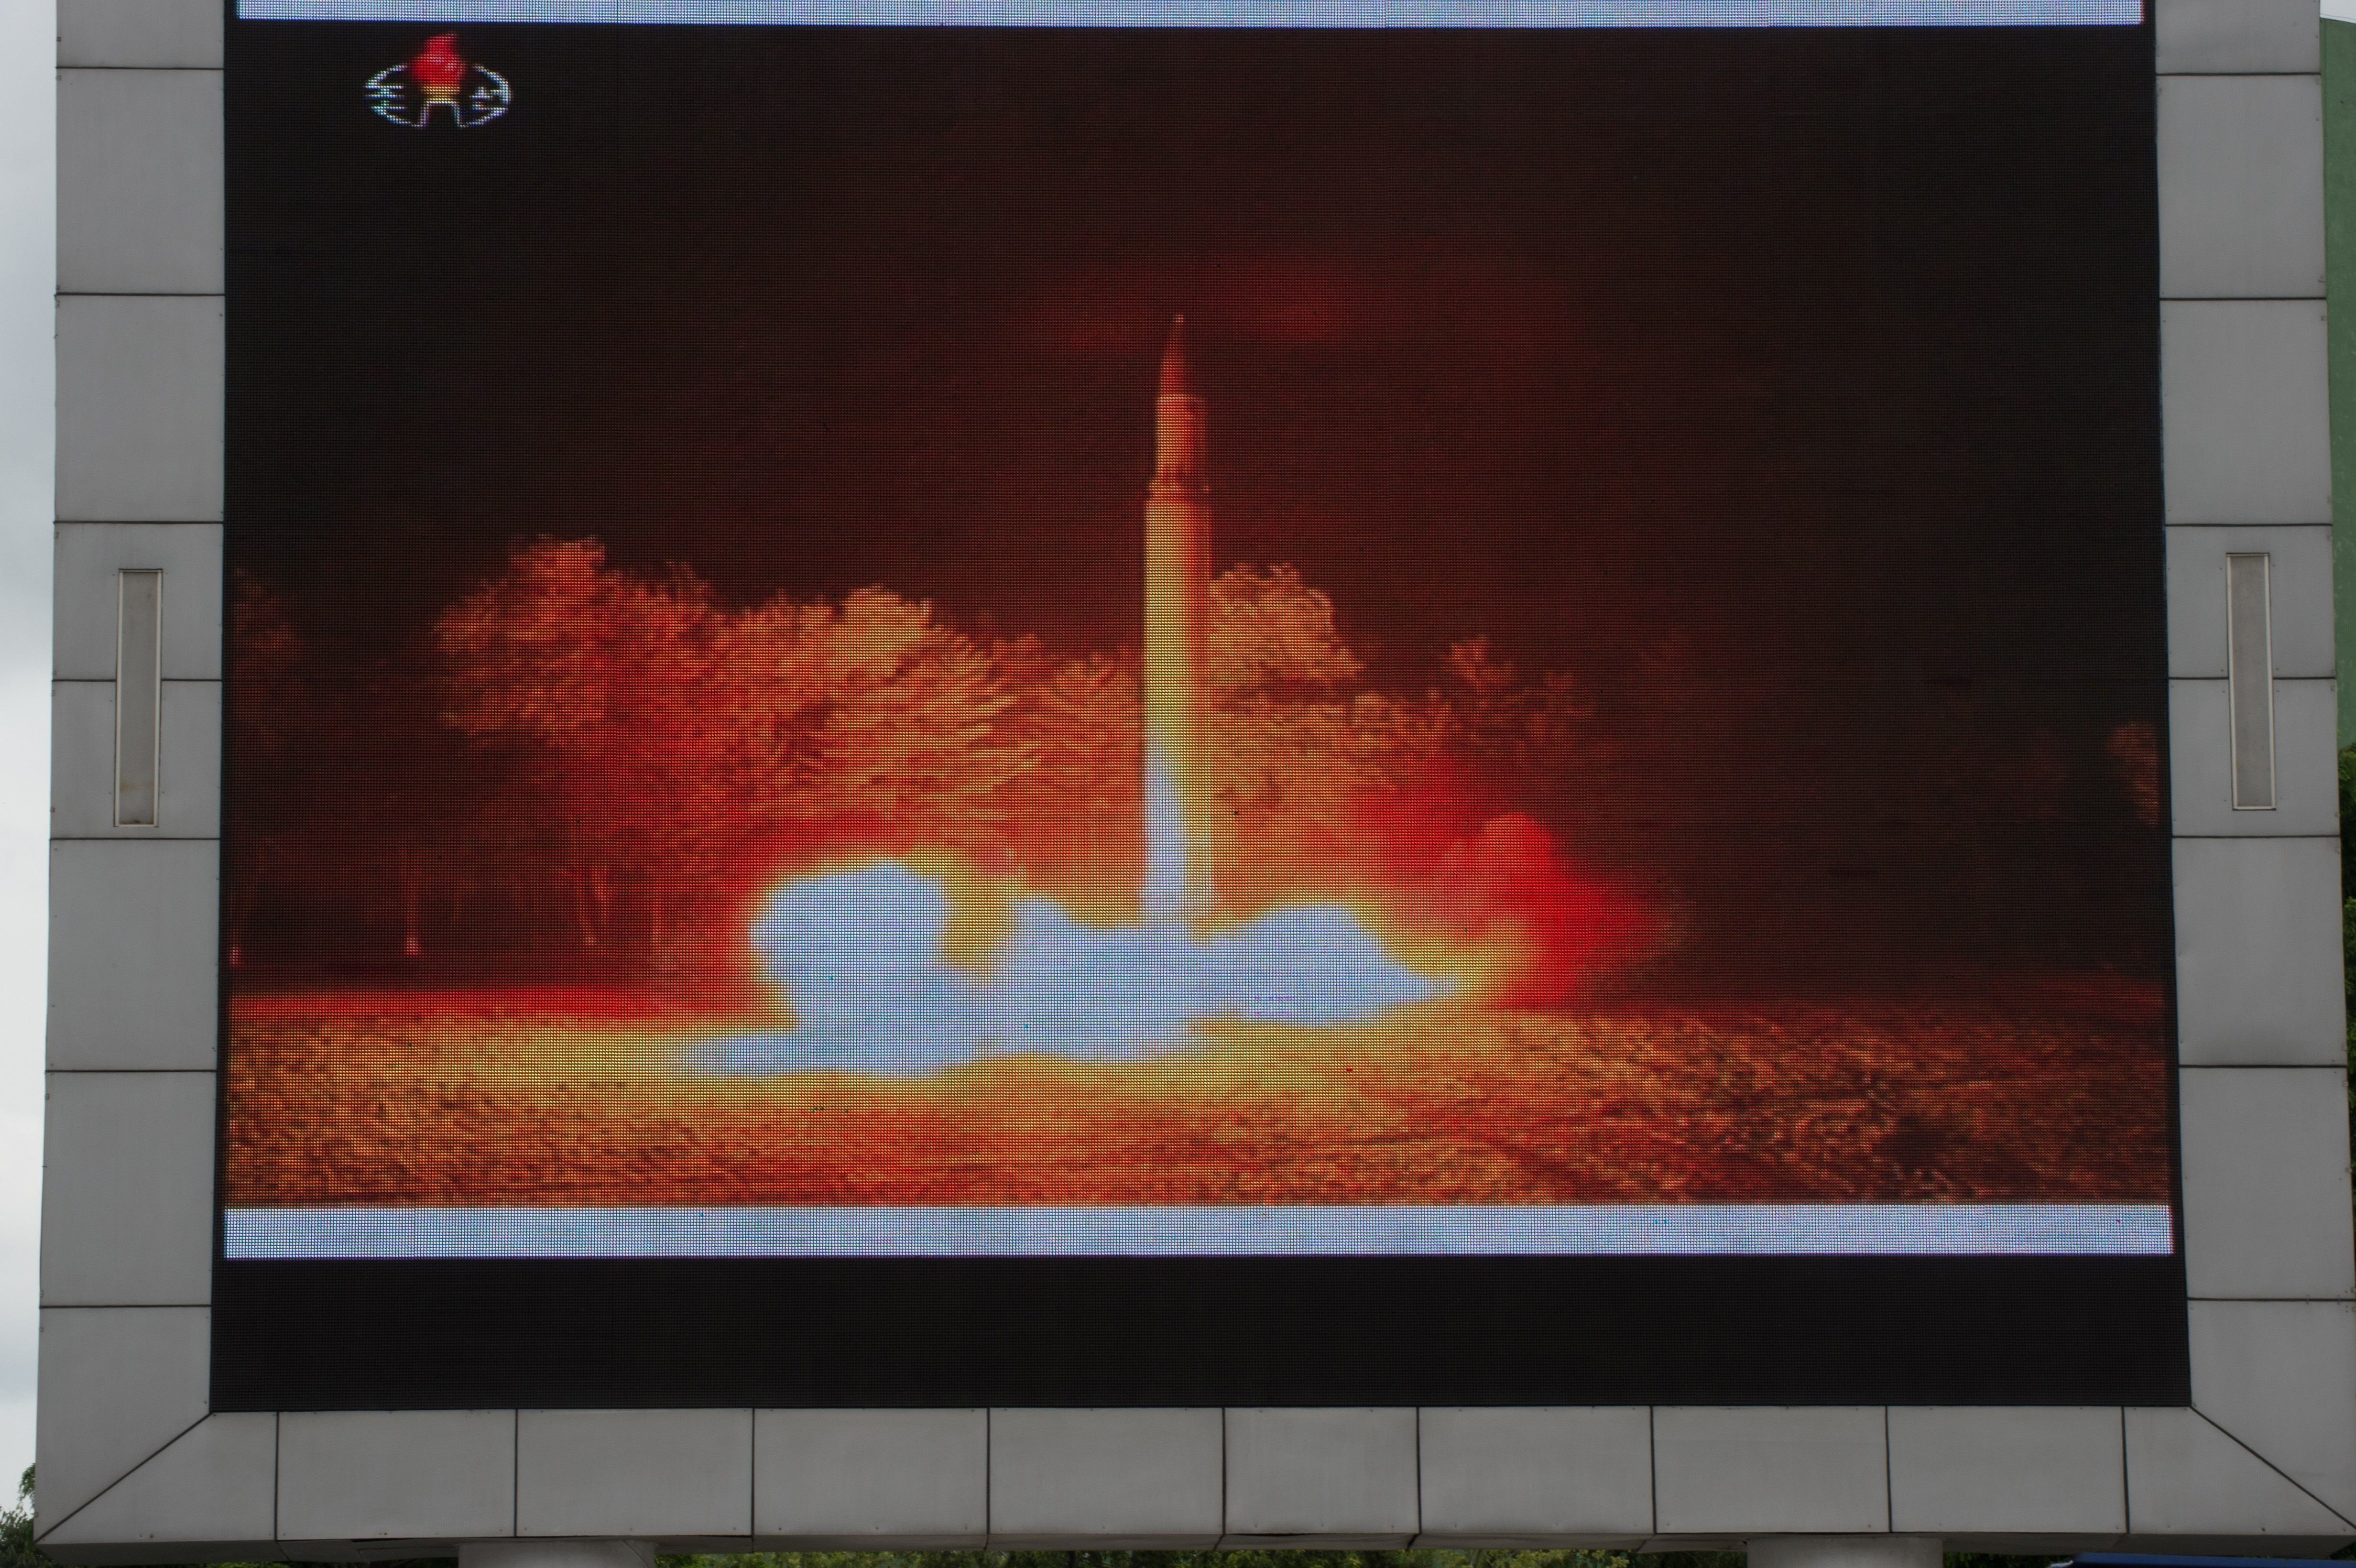 Coverage of an ICBM missile test is displayed on a screen in a public square in Pyongyang on July 29,